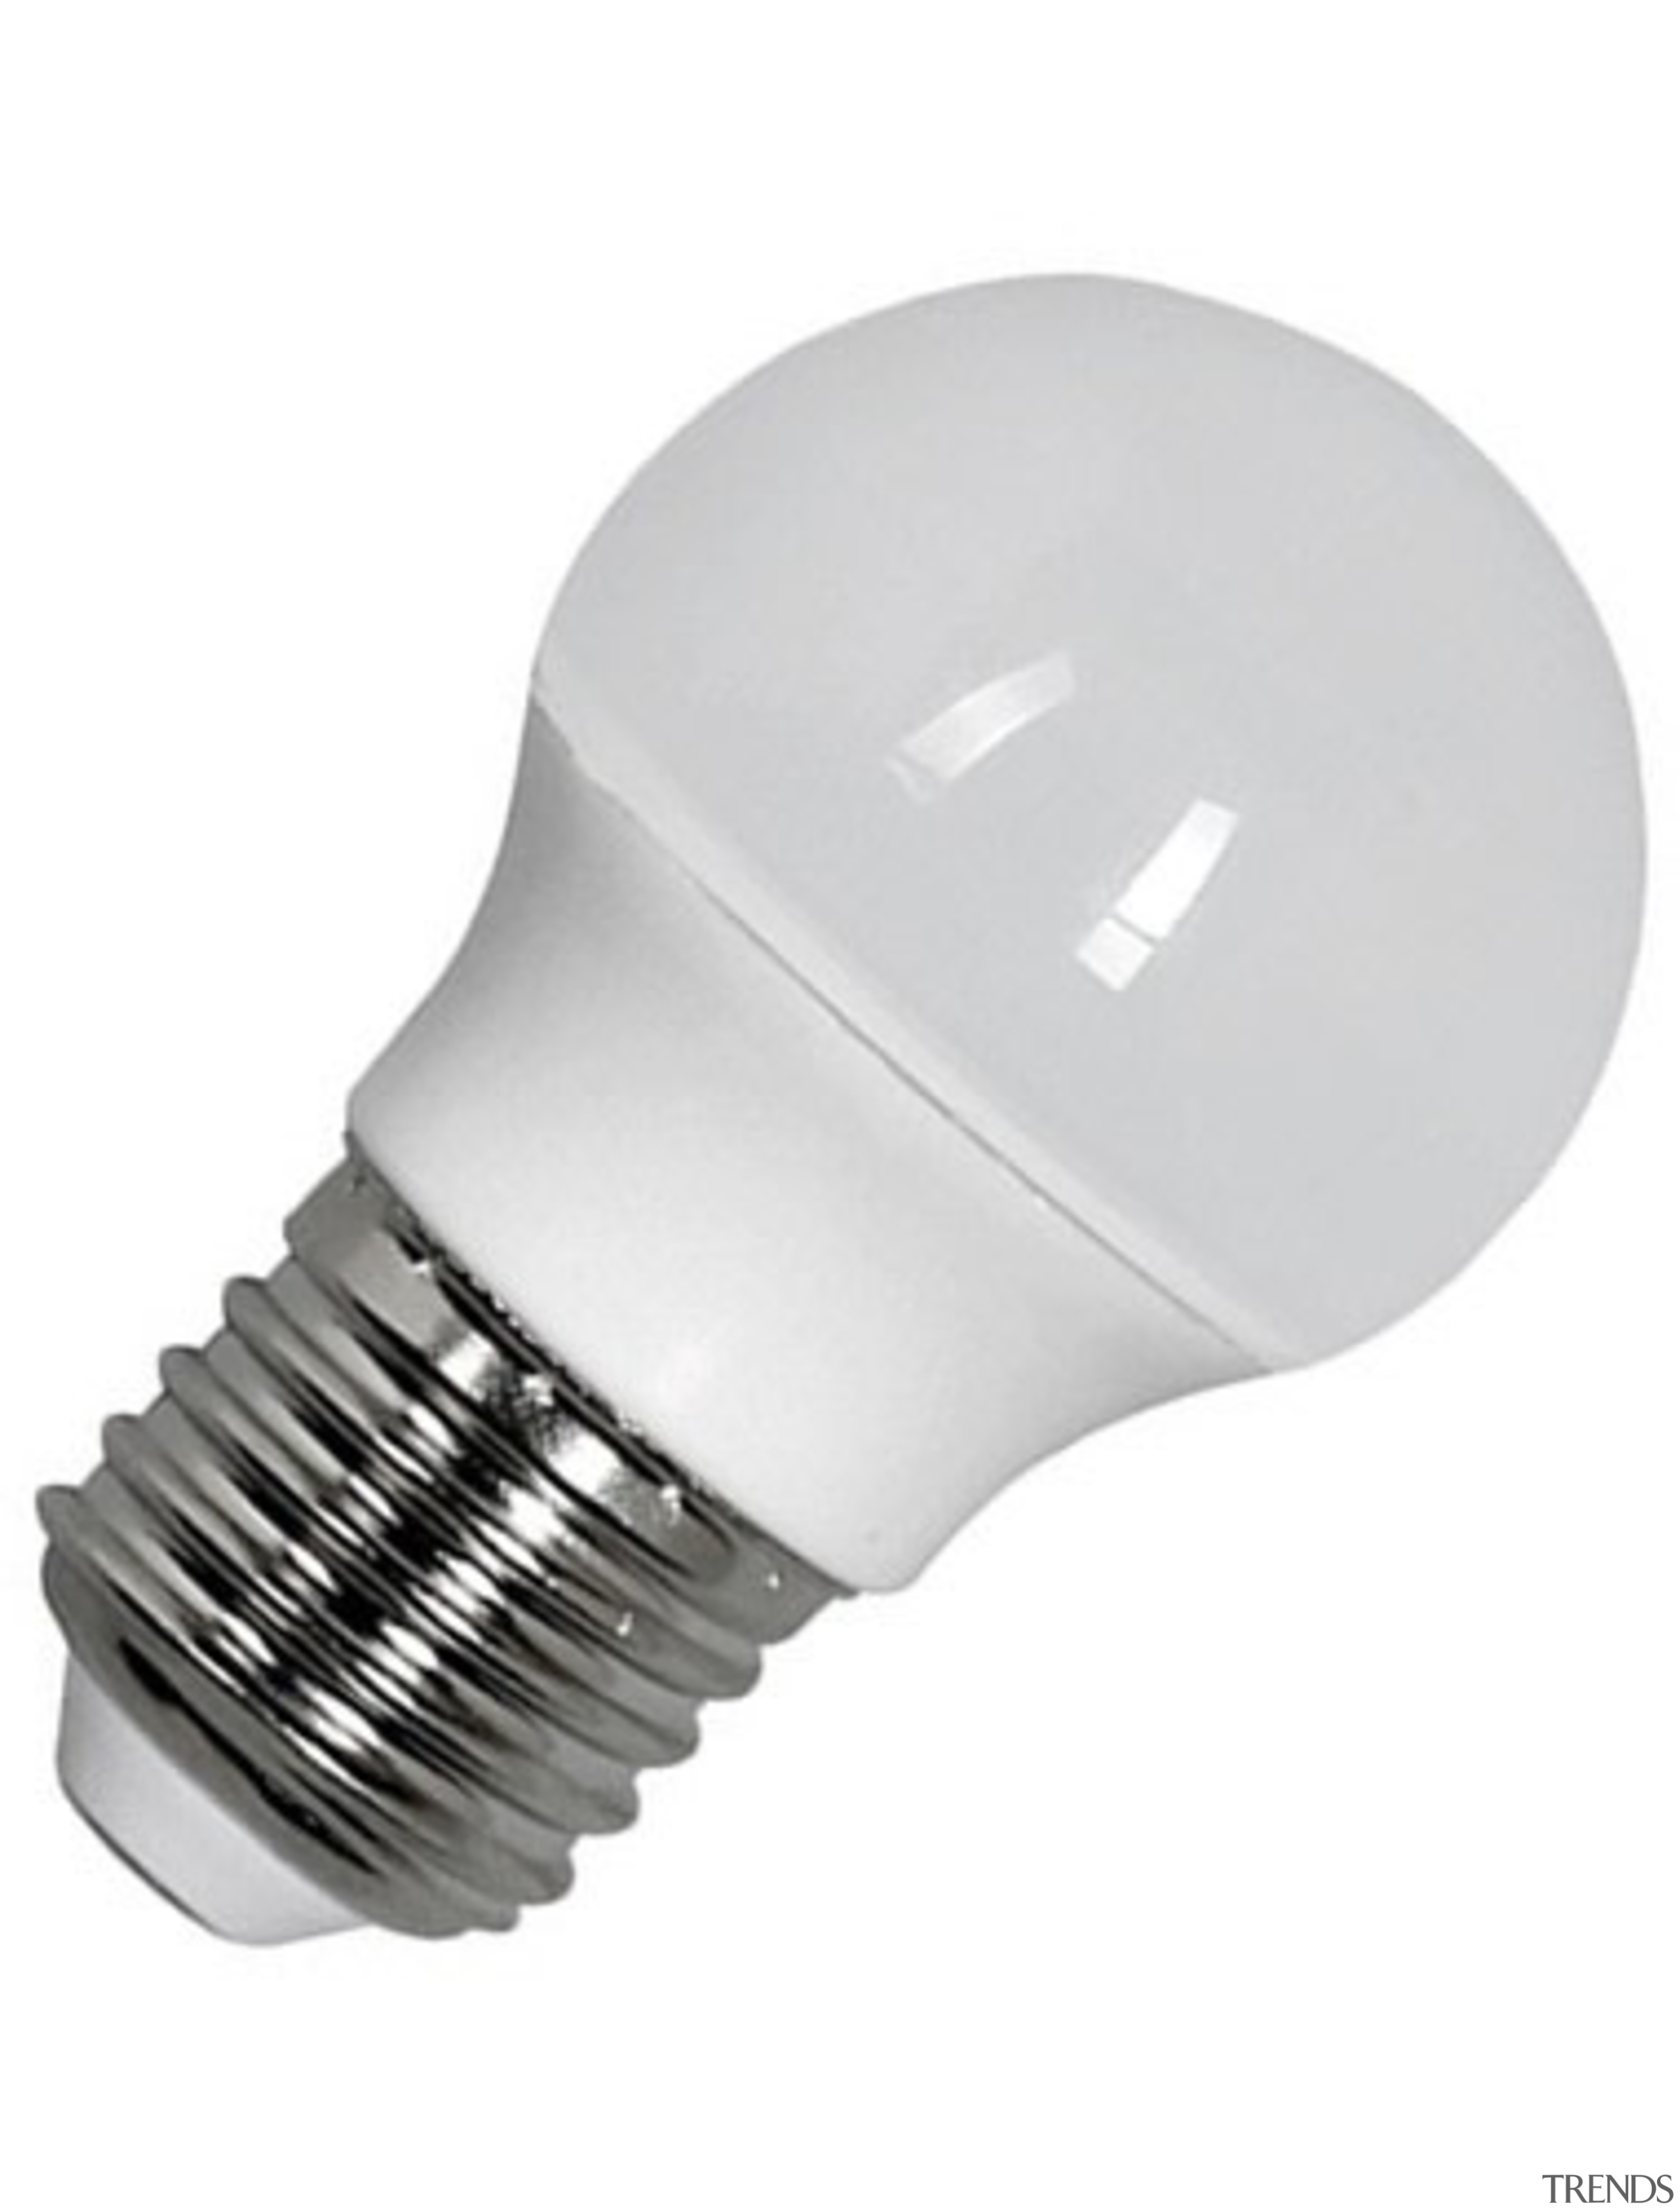 Features4.5WLuminous Flux: 330lmCRI: Ra˃80Efficacy: 73 lm/wBeam angle 150°Epistar lighting, product design, white